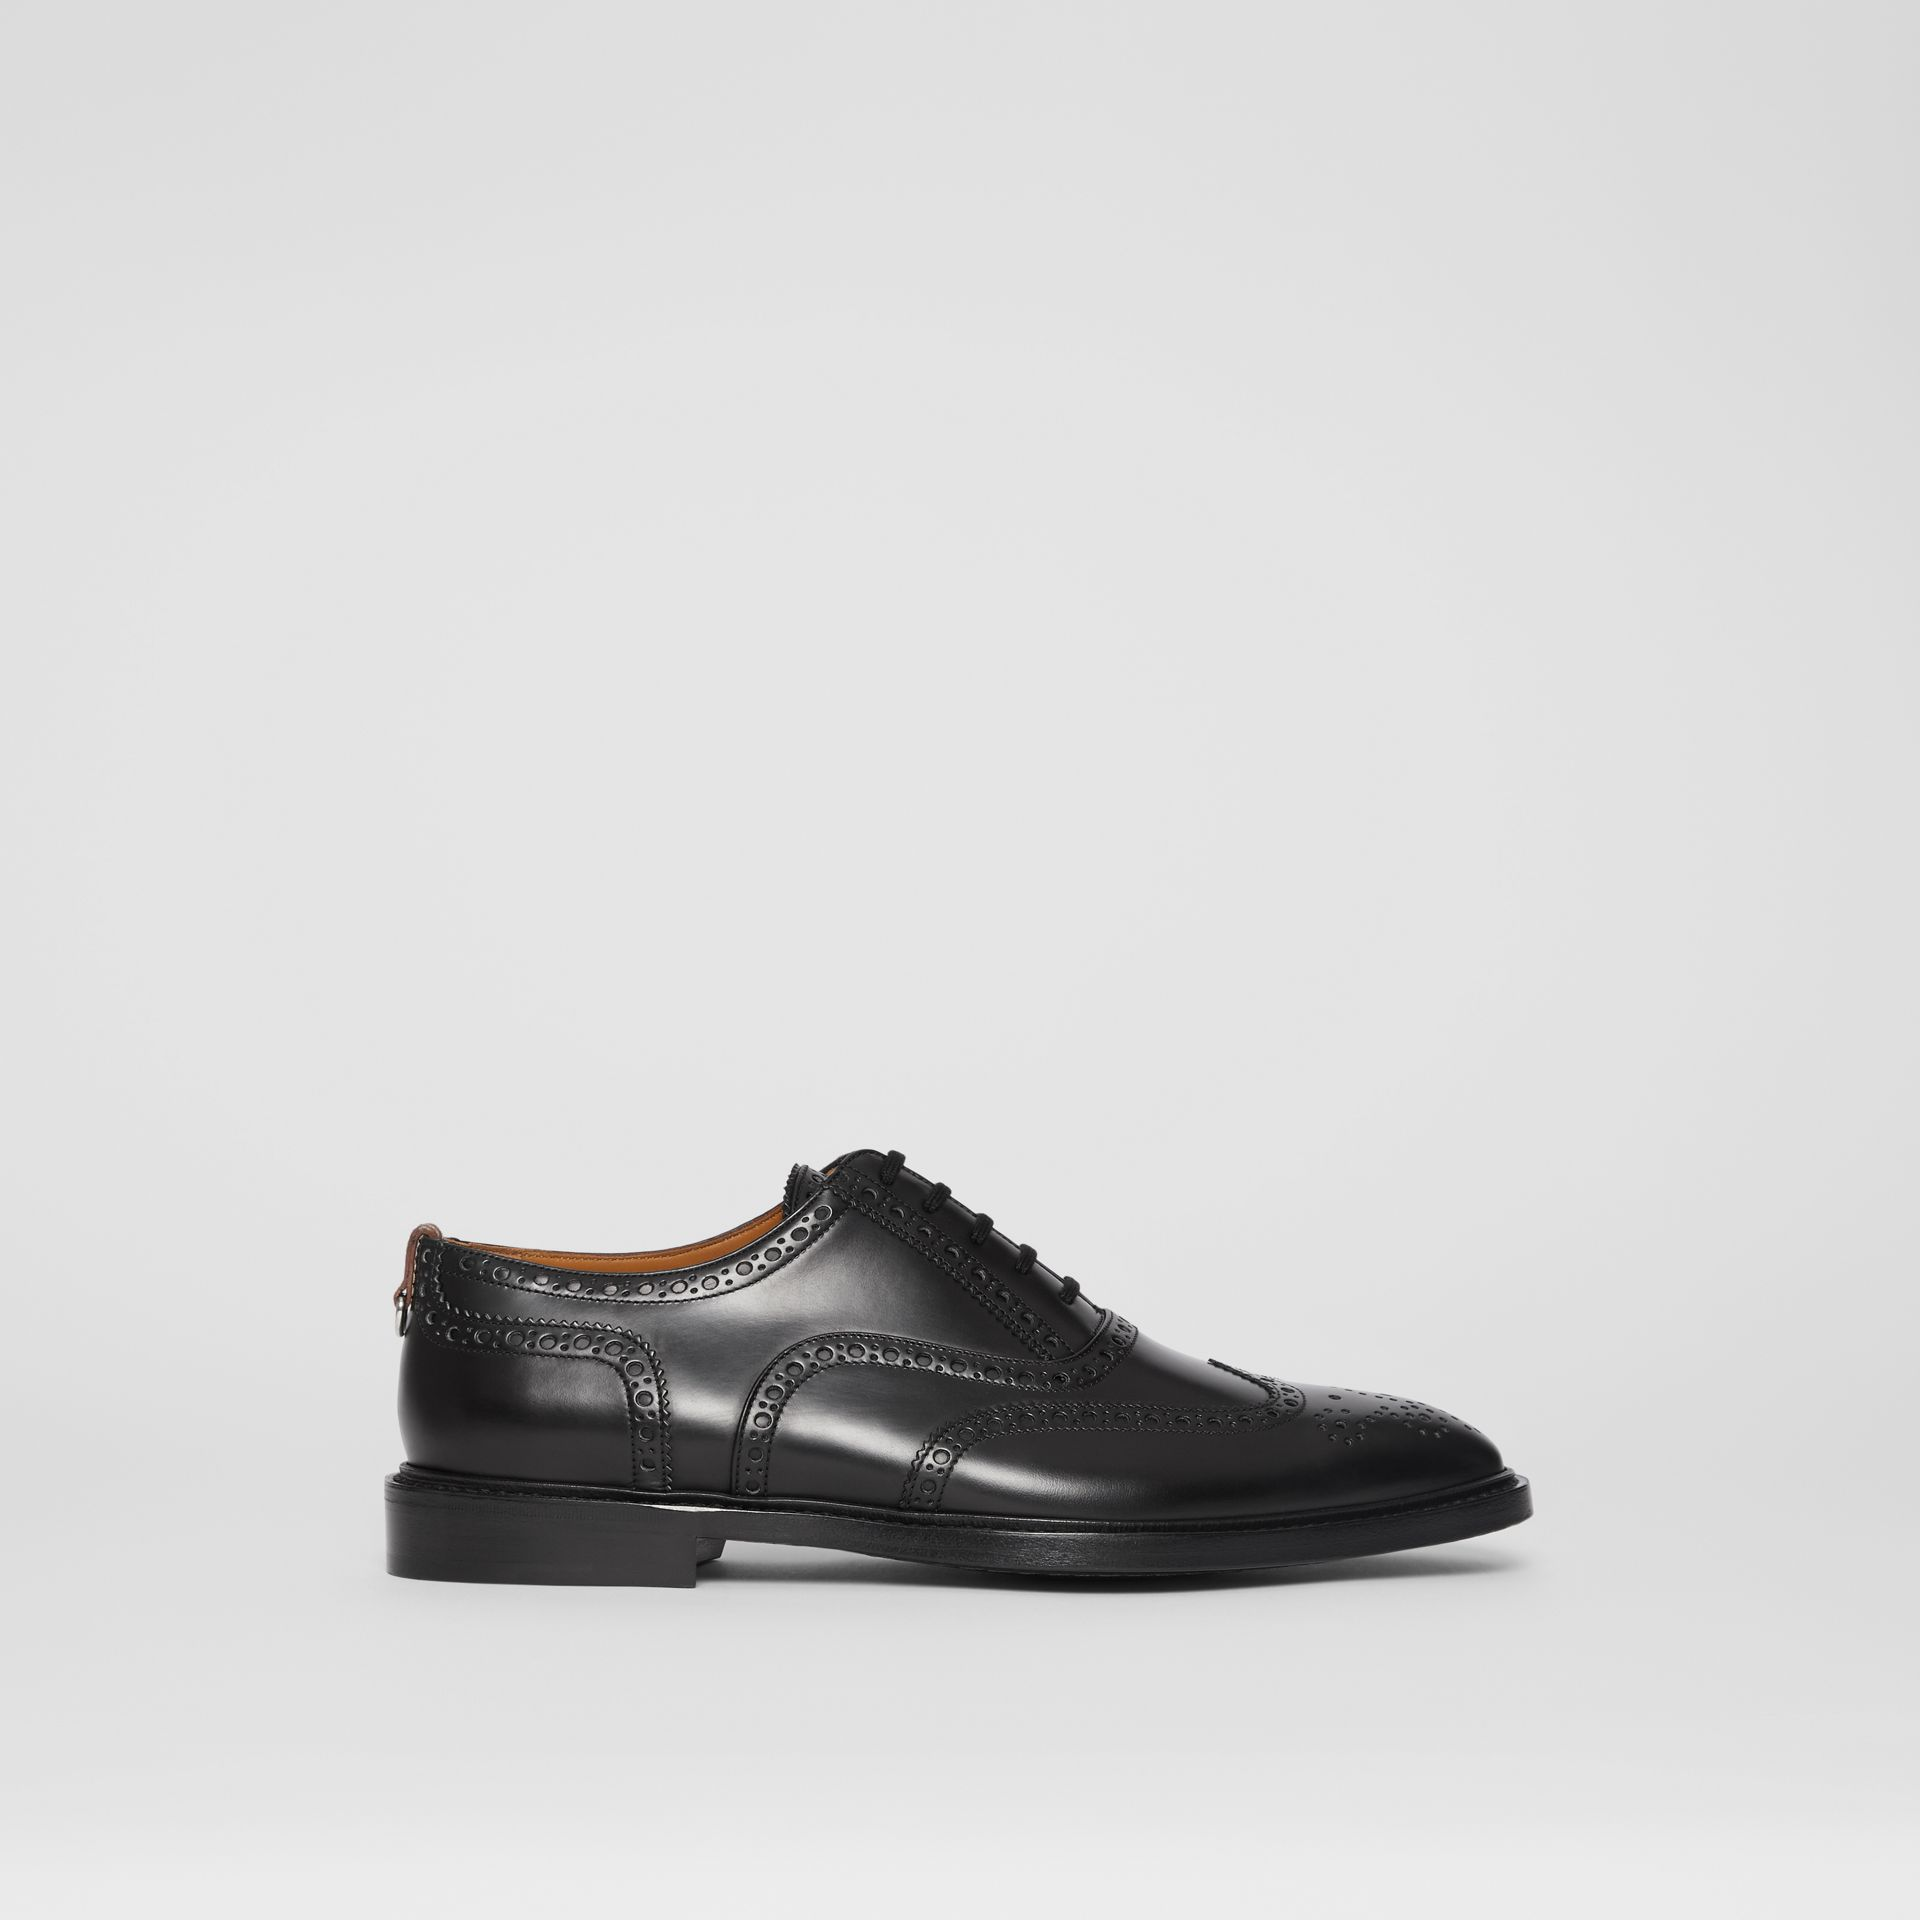 D-ring Detail Patent Leather Oxford Brogues in Black - Men | Burberry - gallery image 4